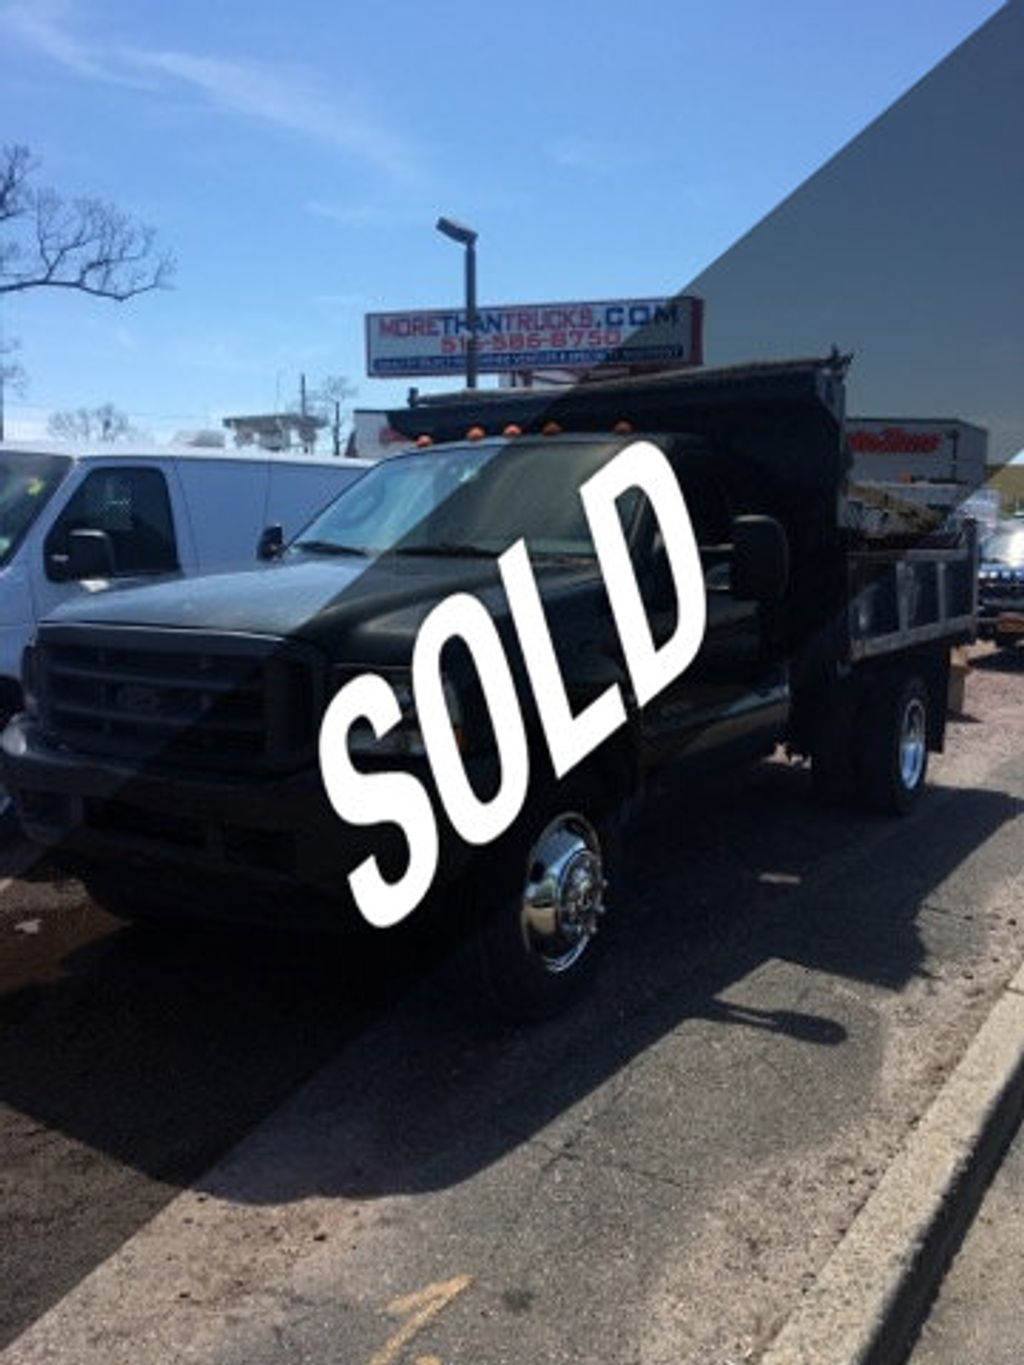 2004 Ford Super Duty F-550 9 FOOT MASON DUMP  with PTO F550 9 FOOT MASON DUMP 5 SPEED WITH PTO CONTROLLER - 14872380